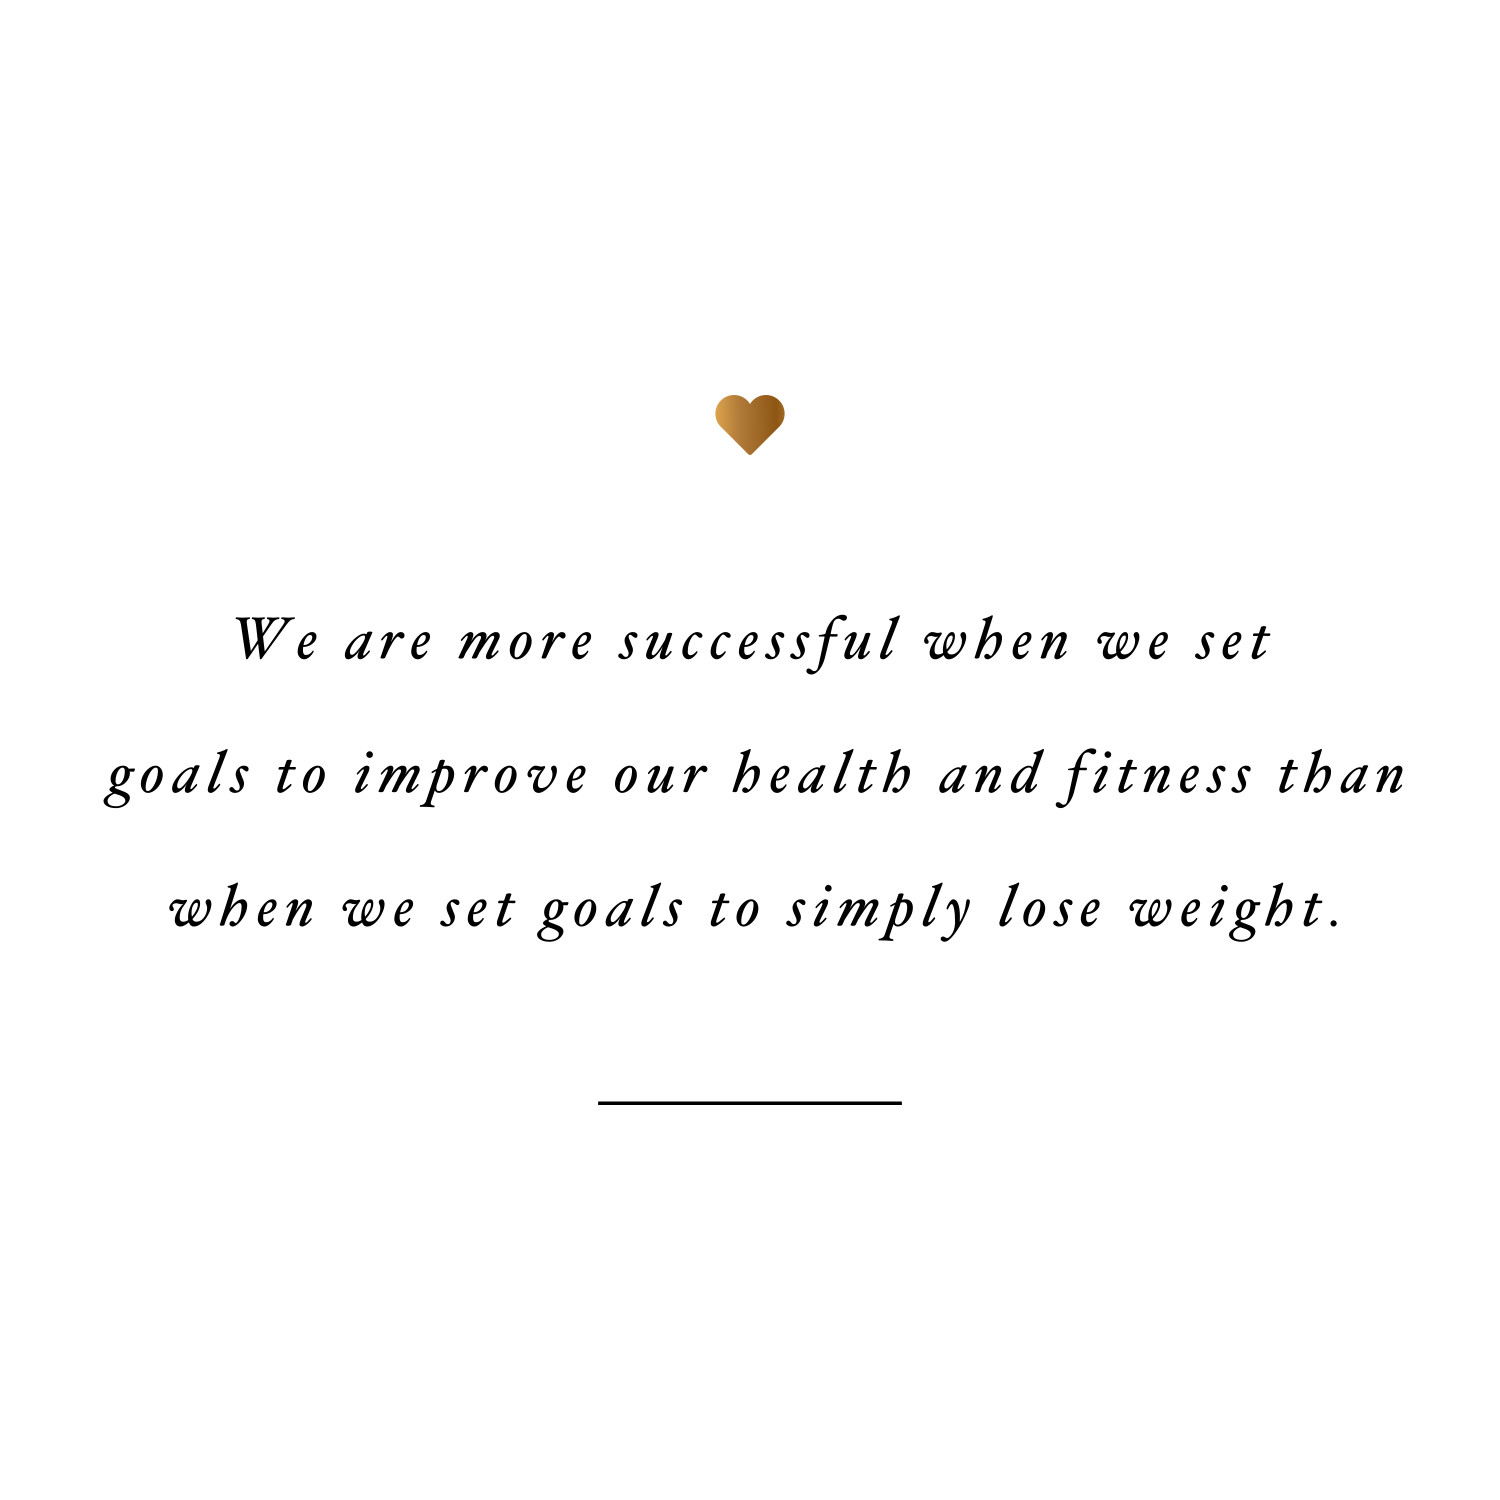 Wellness Quotes Set Smart Goals  Wellness And Fitness Inspirational Quote